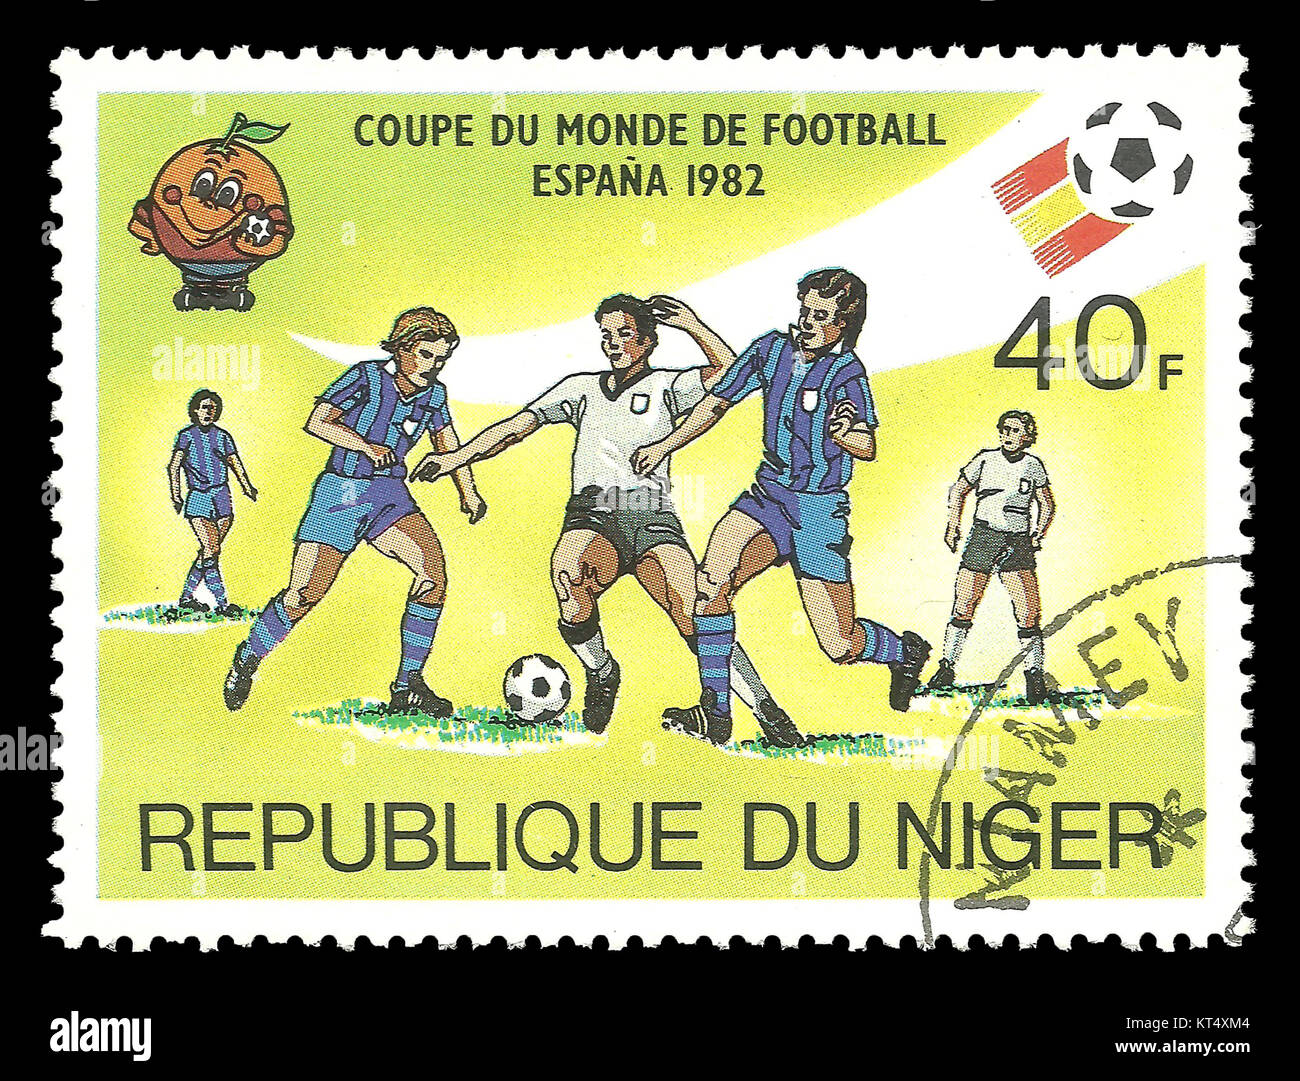 Niger - CIRCA 1981: Stamp on topic of Spain World Football Cup 1988, shows soccer players in the game - Stock Image